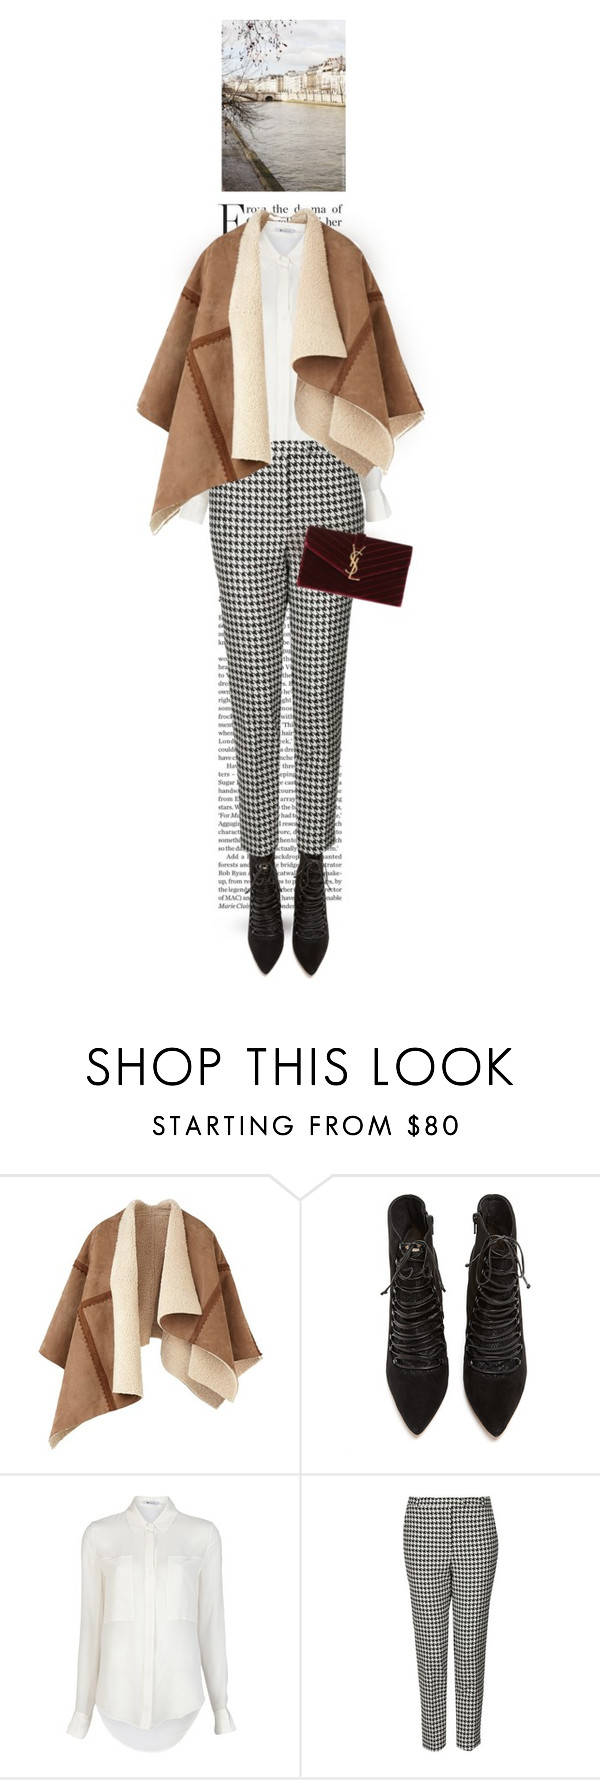 """175."" by auroram ❤ liked on Polyvore featuring Burberry, Lucy Choi London, T By Alexander Wang, Topshop and Yves Saint Laurent"